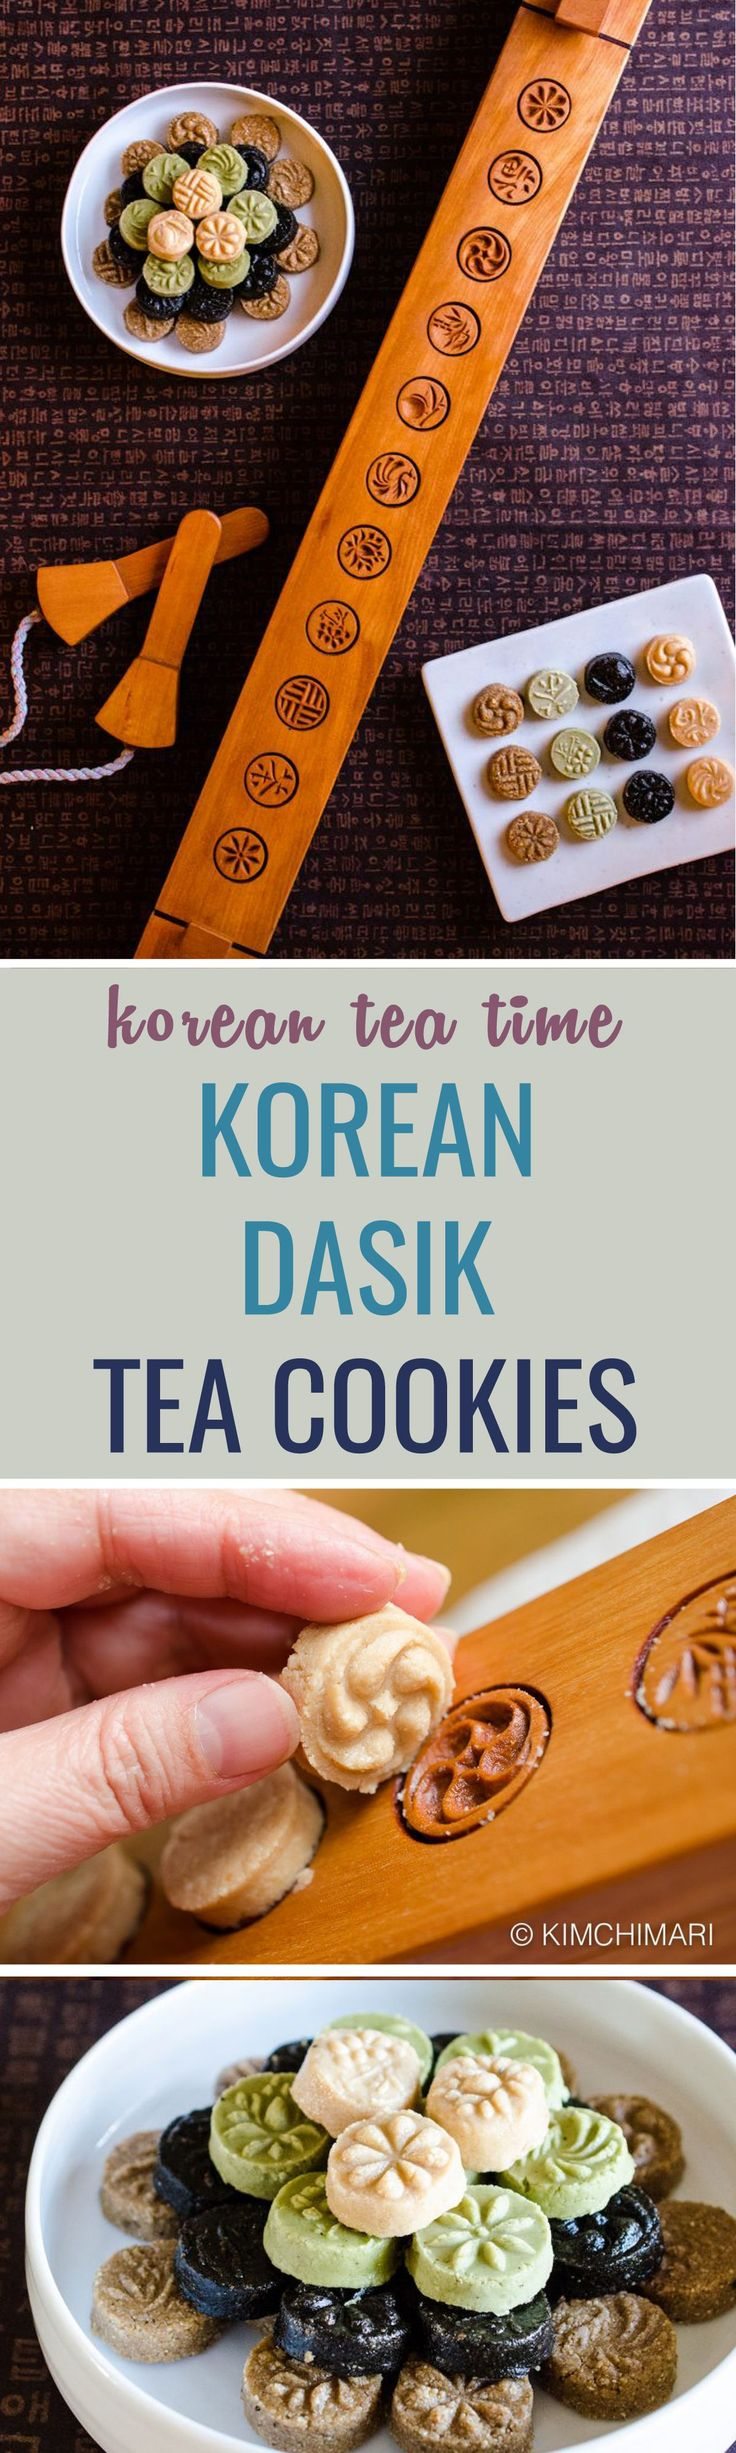 Korean tea cookies or Dasik (다식 茶食) are wonderfully light, mildly sweet and melt-in-your mouth sweets that date all the way back to the 17th century. My ancestors prepared this very traditional, gluten free and vegan Korean treats for Lunar New Years in Korea.